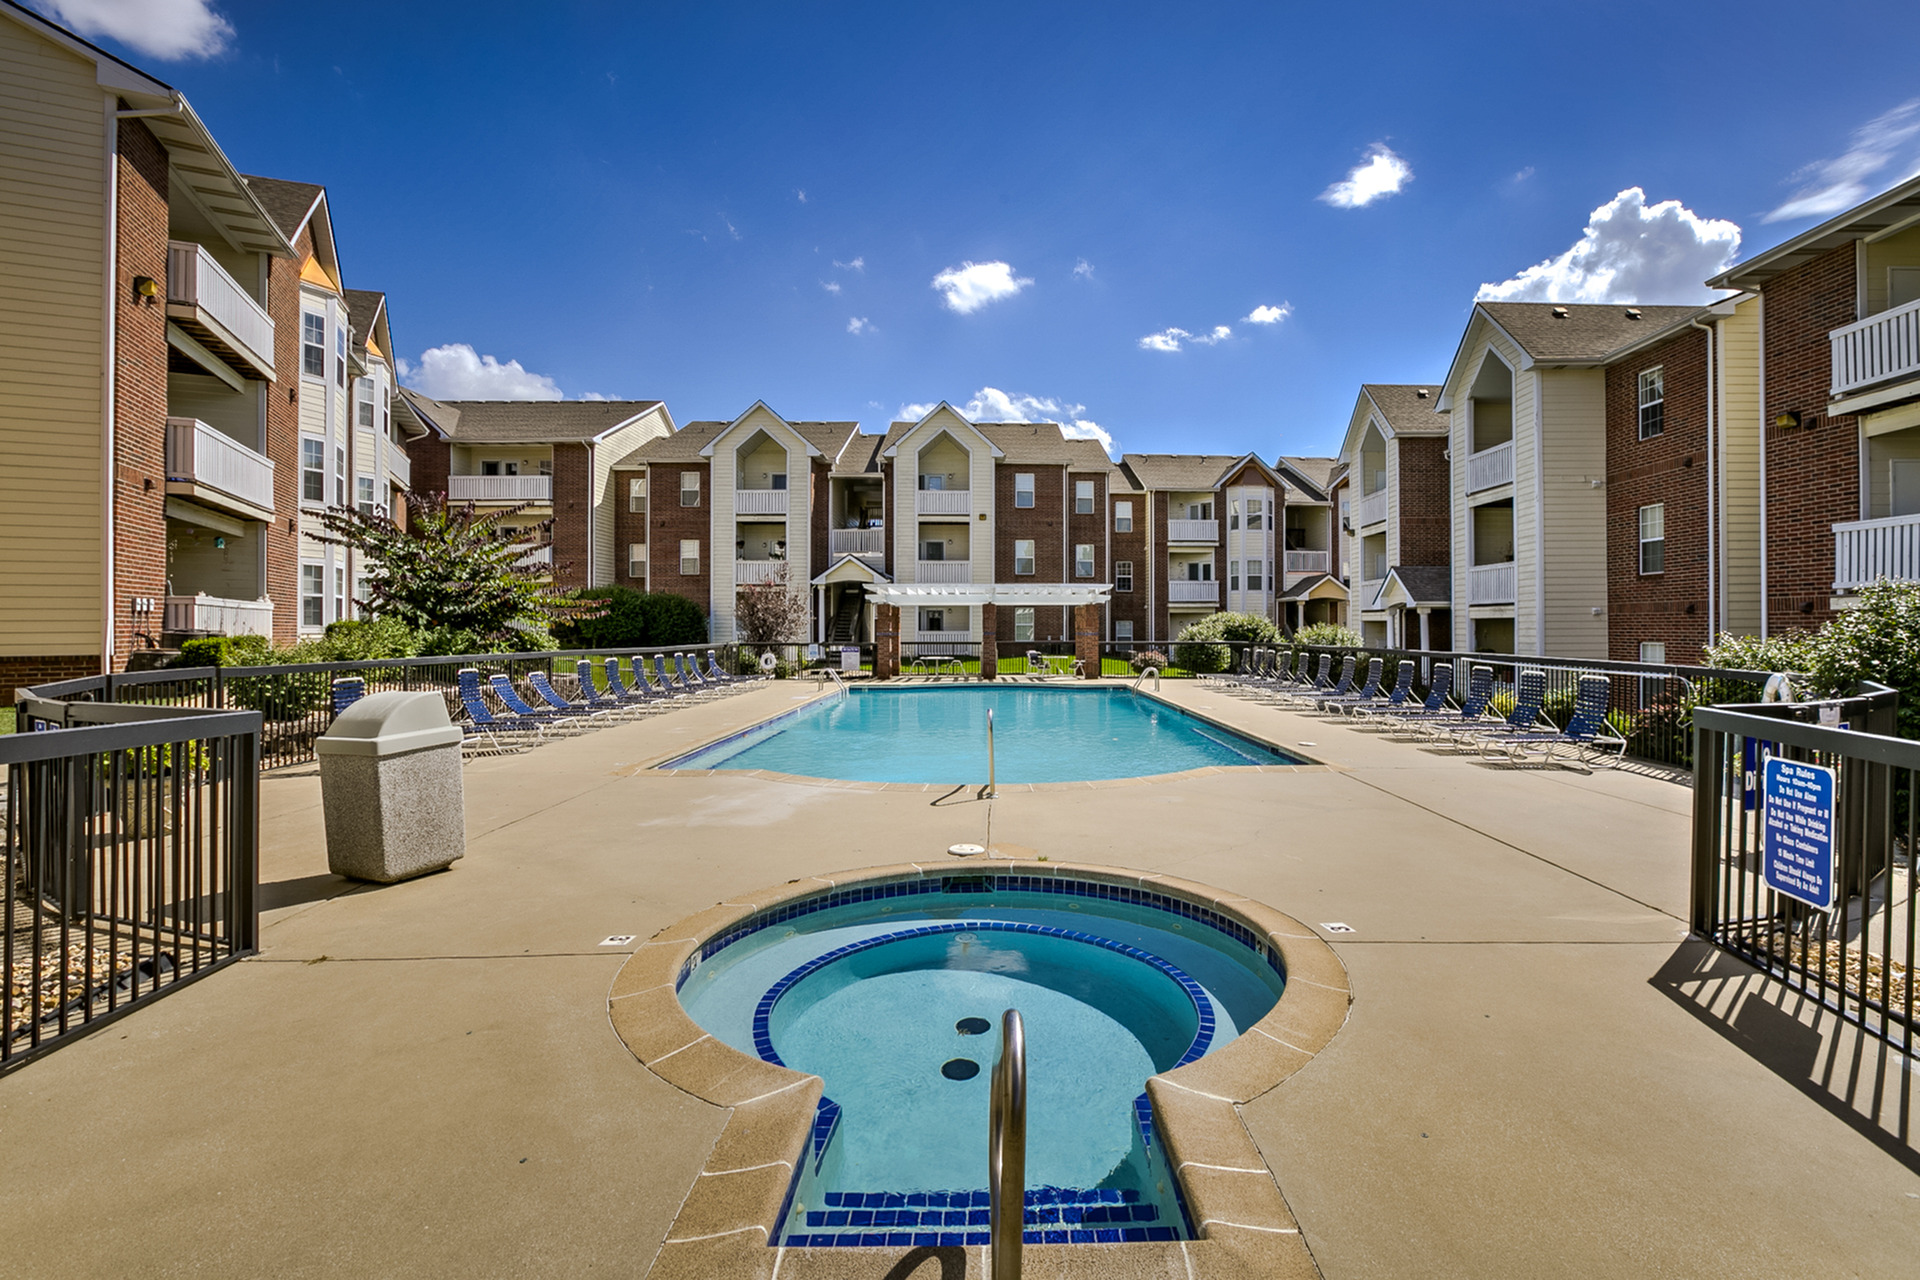 Image of Swimming Pool for Kelly Greens Apartments